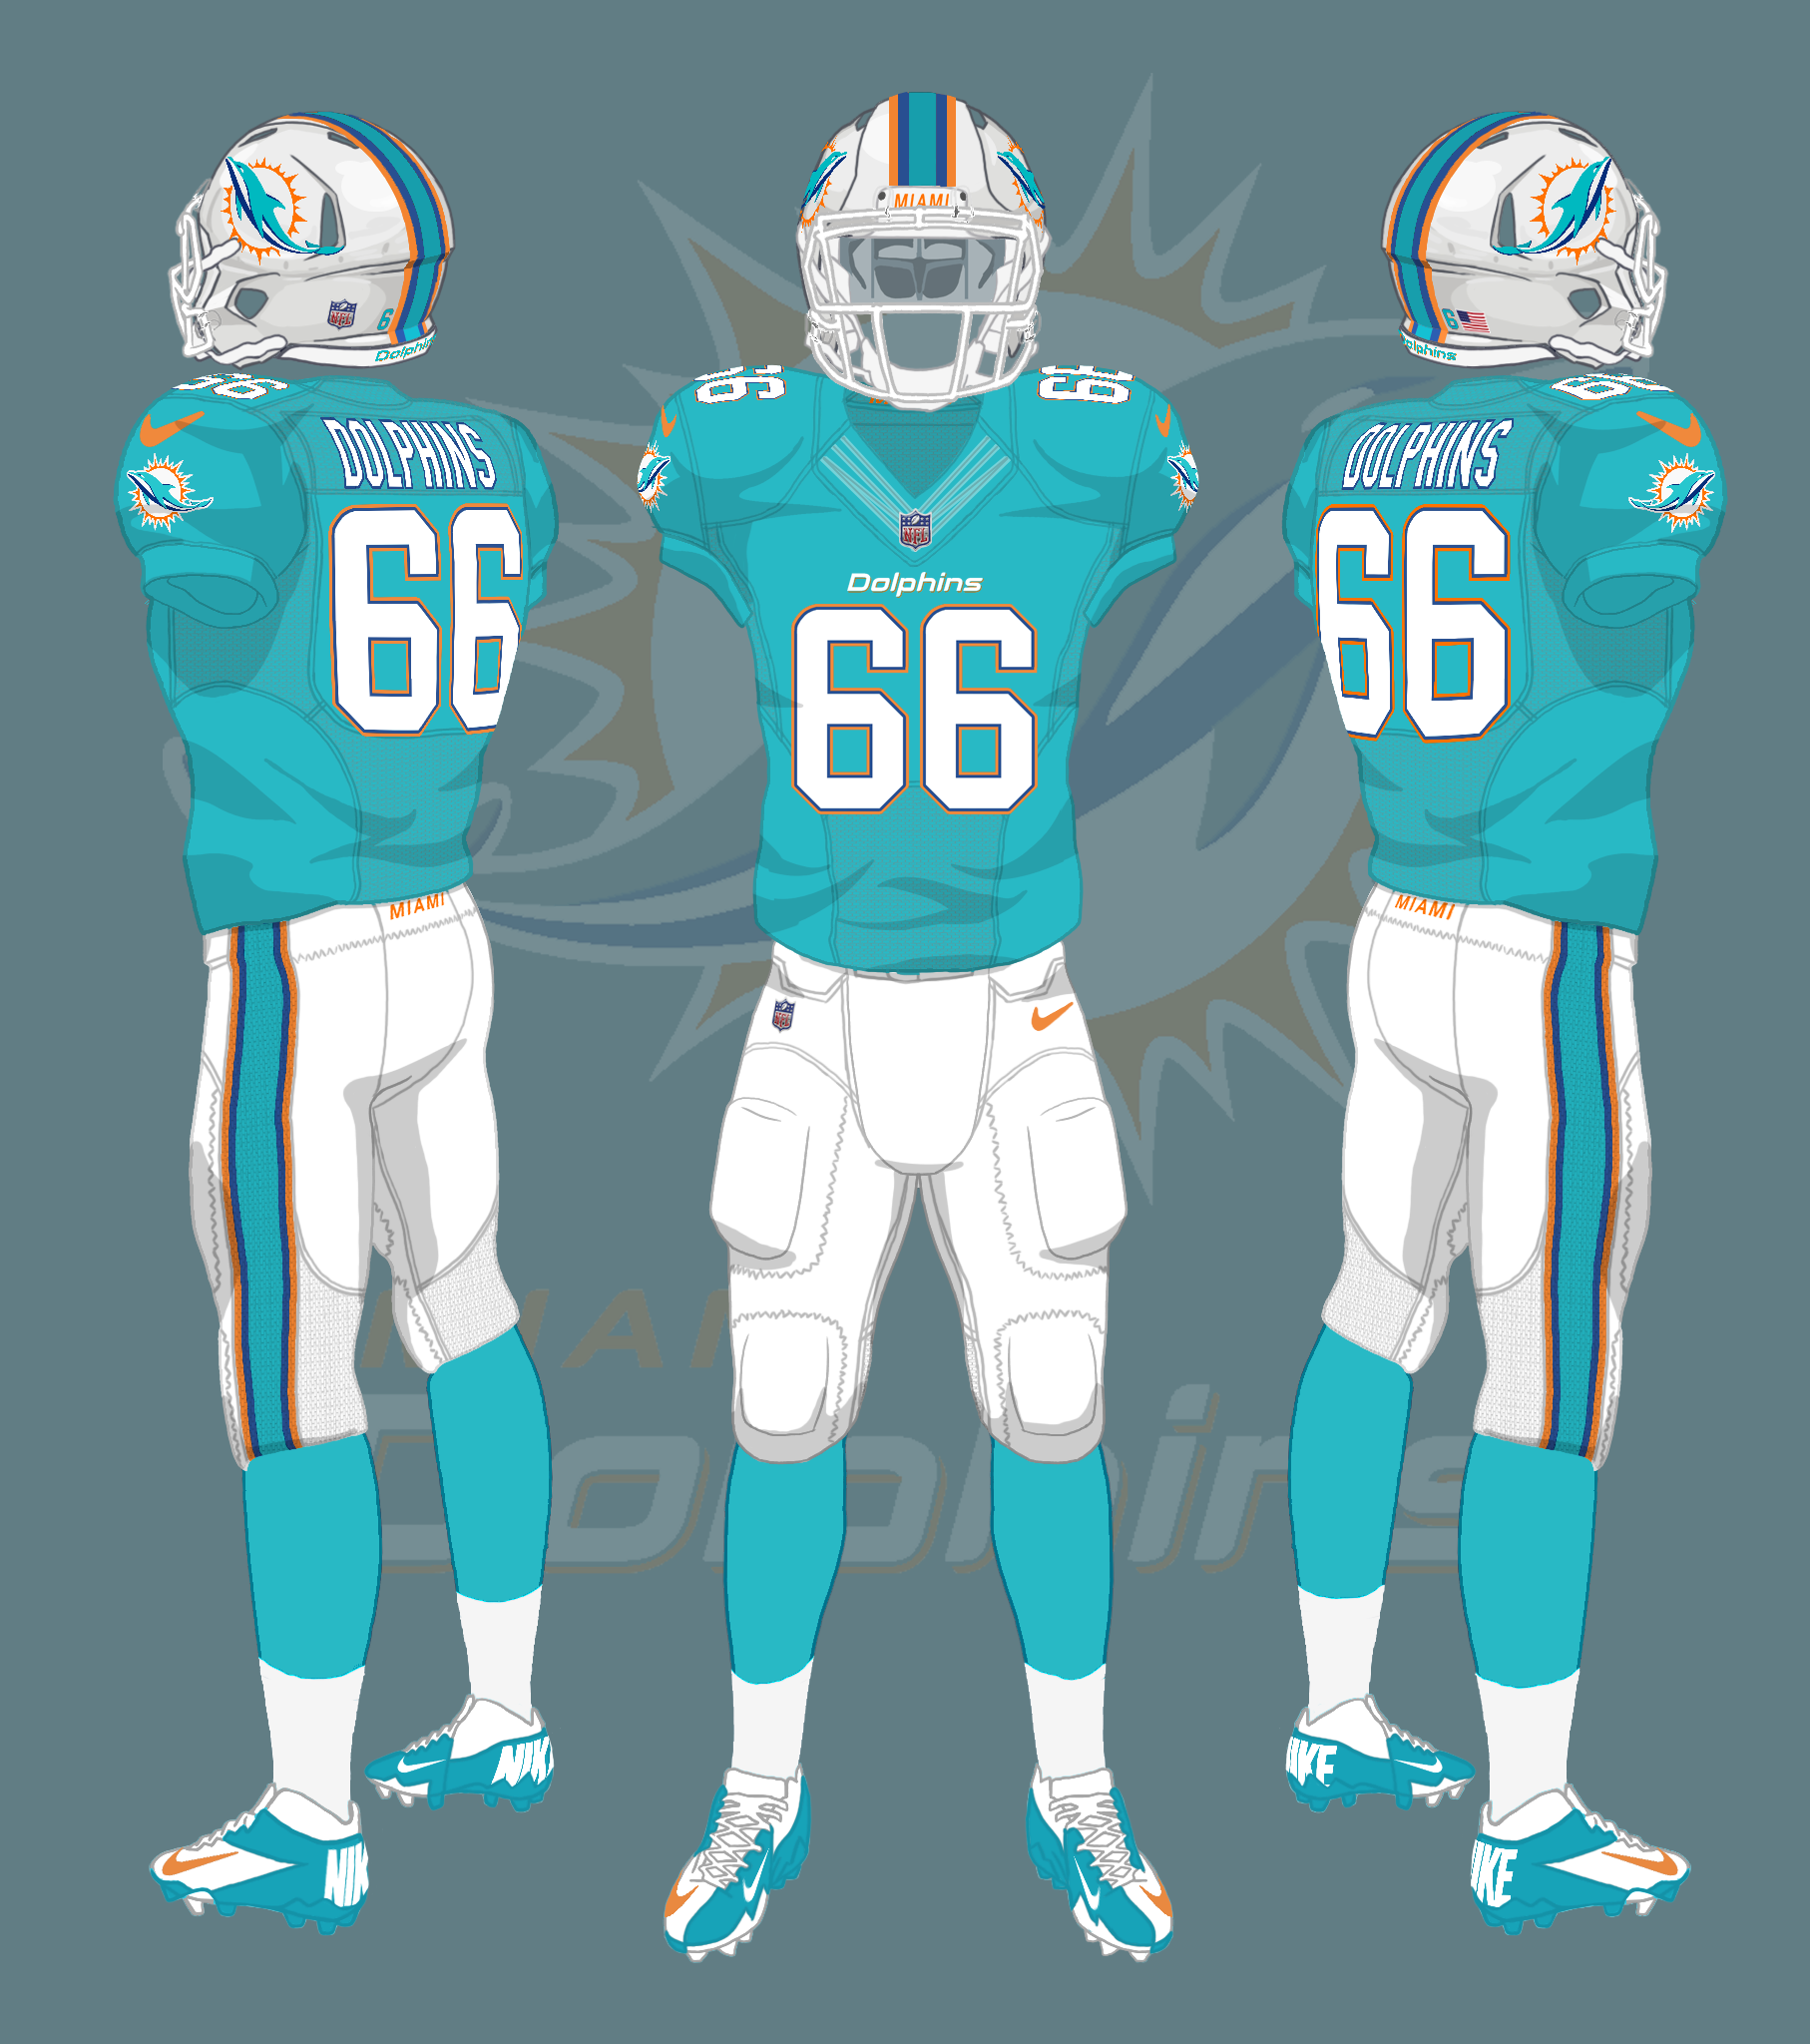 Miami Dolphins uniforms 2013-2017 by